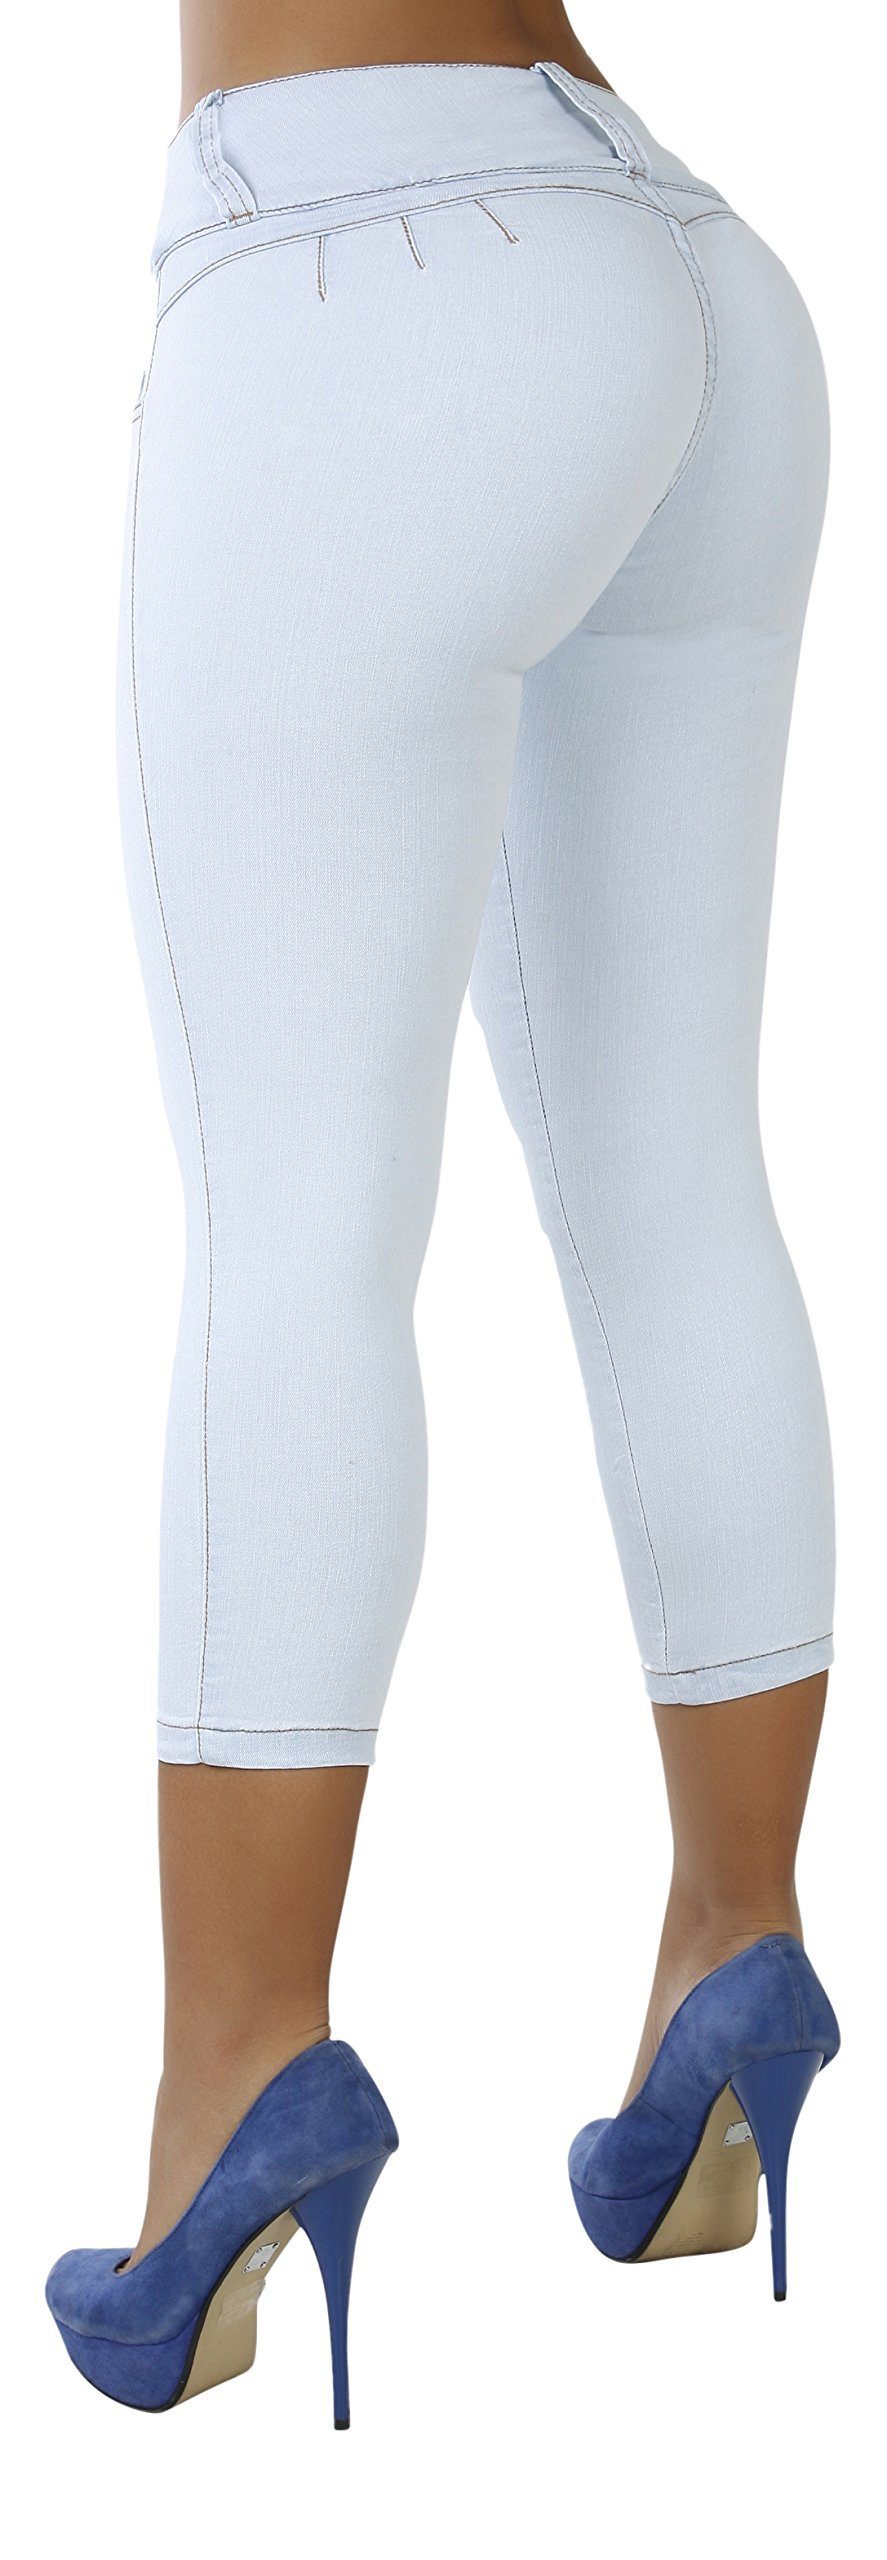 Curvify 764 Women's Butt-Lifting Skinny Jeans